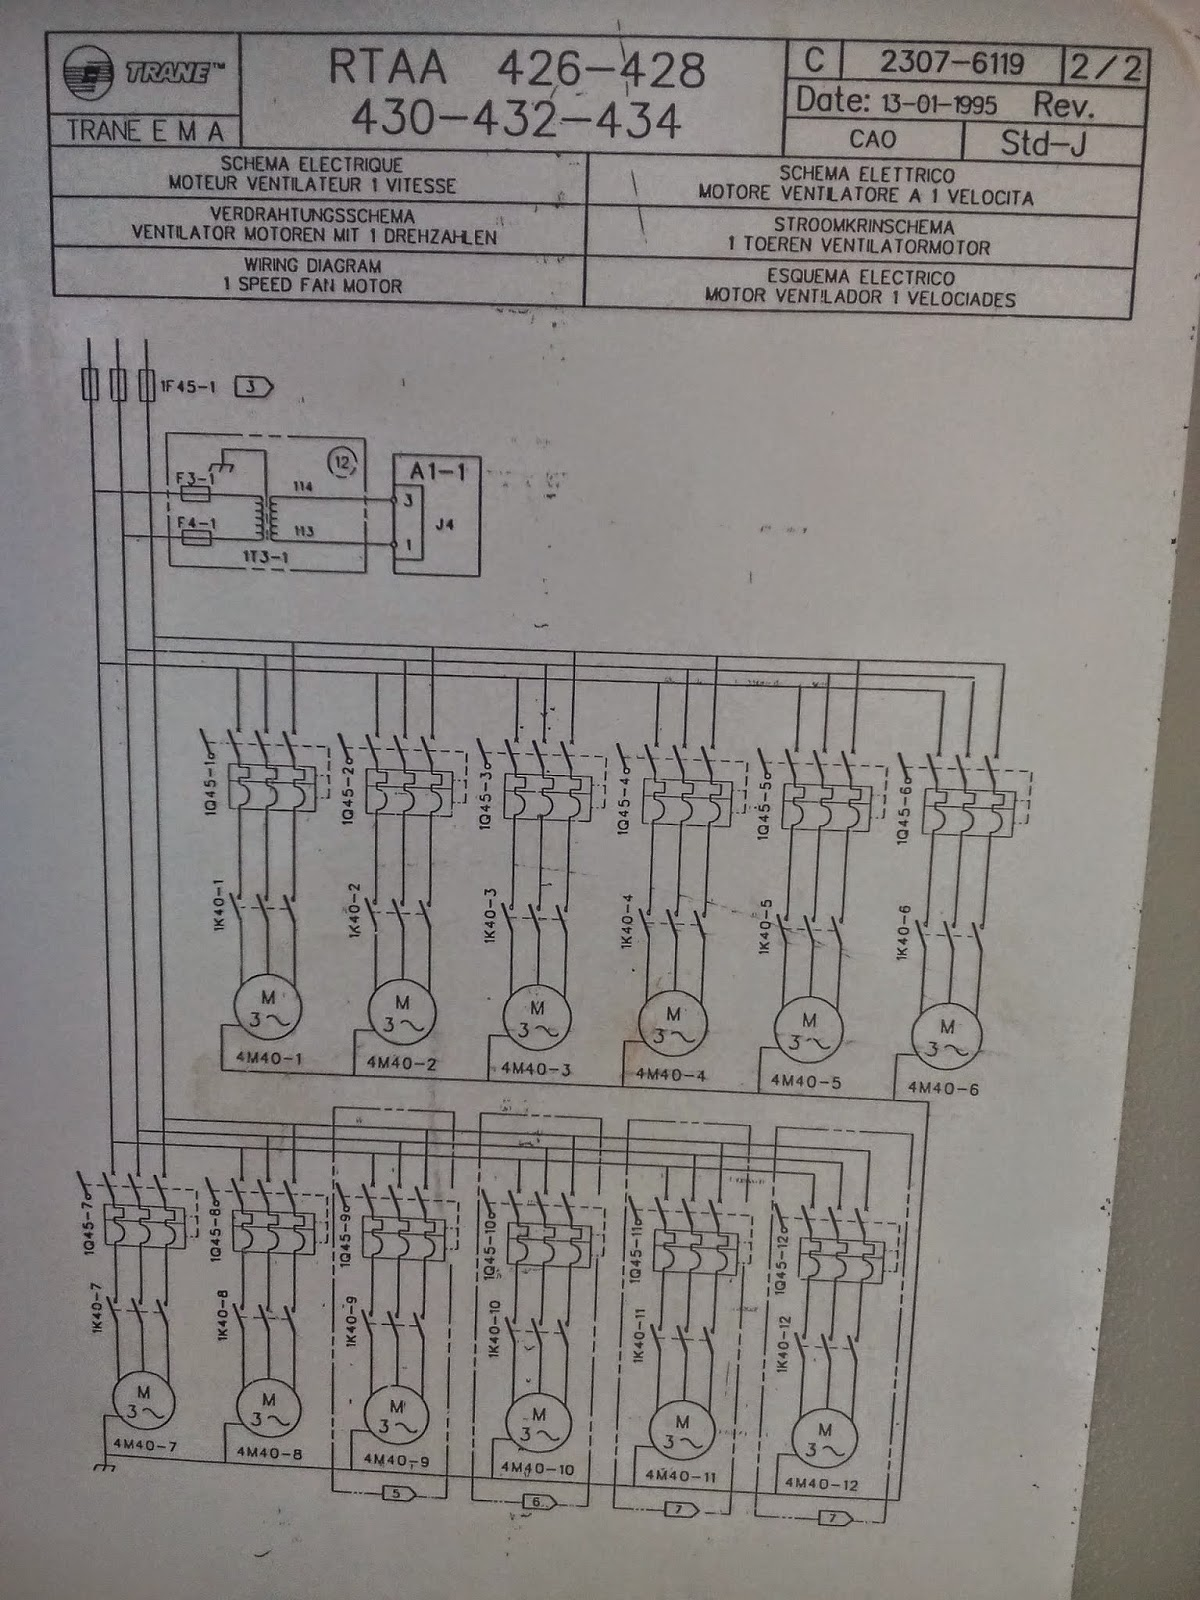 HVAC     CHILLERS  HEATPUMP  Trane chiller air cooled control    wiring       diagram    RTAA Series